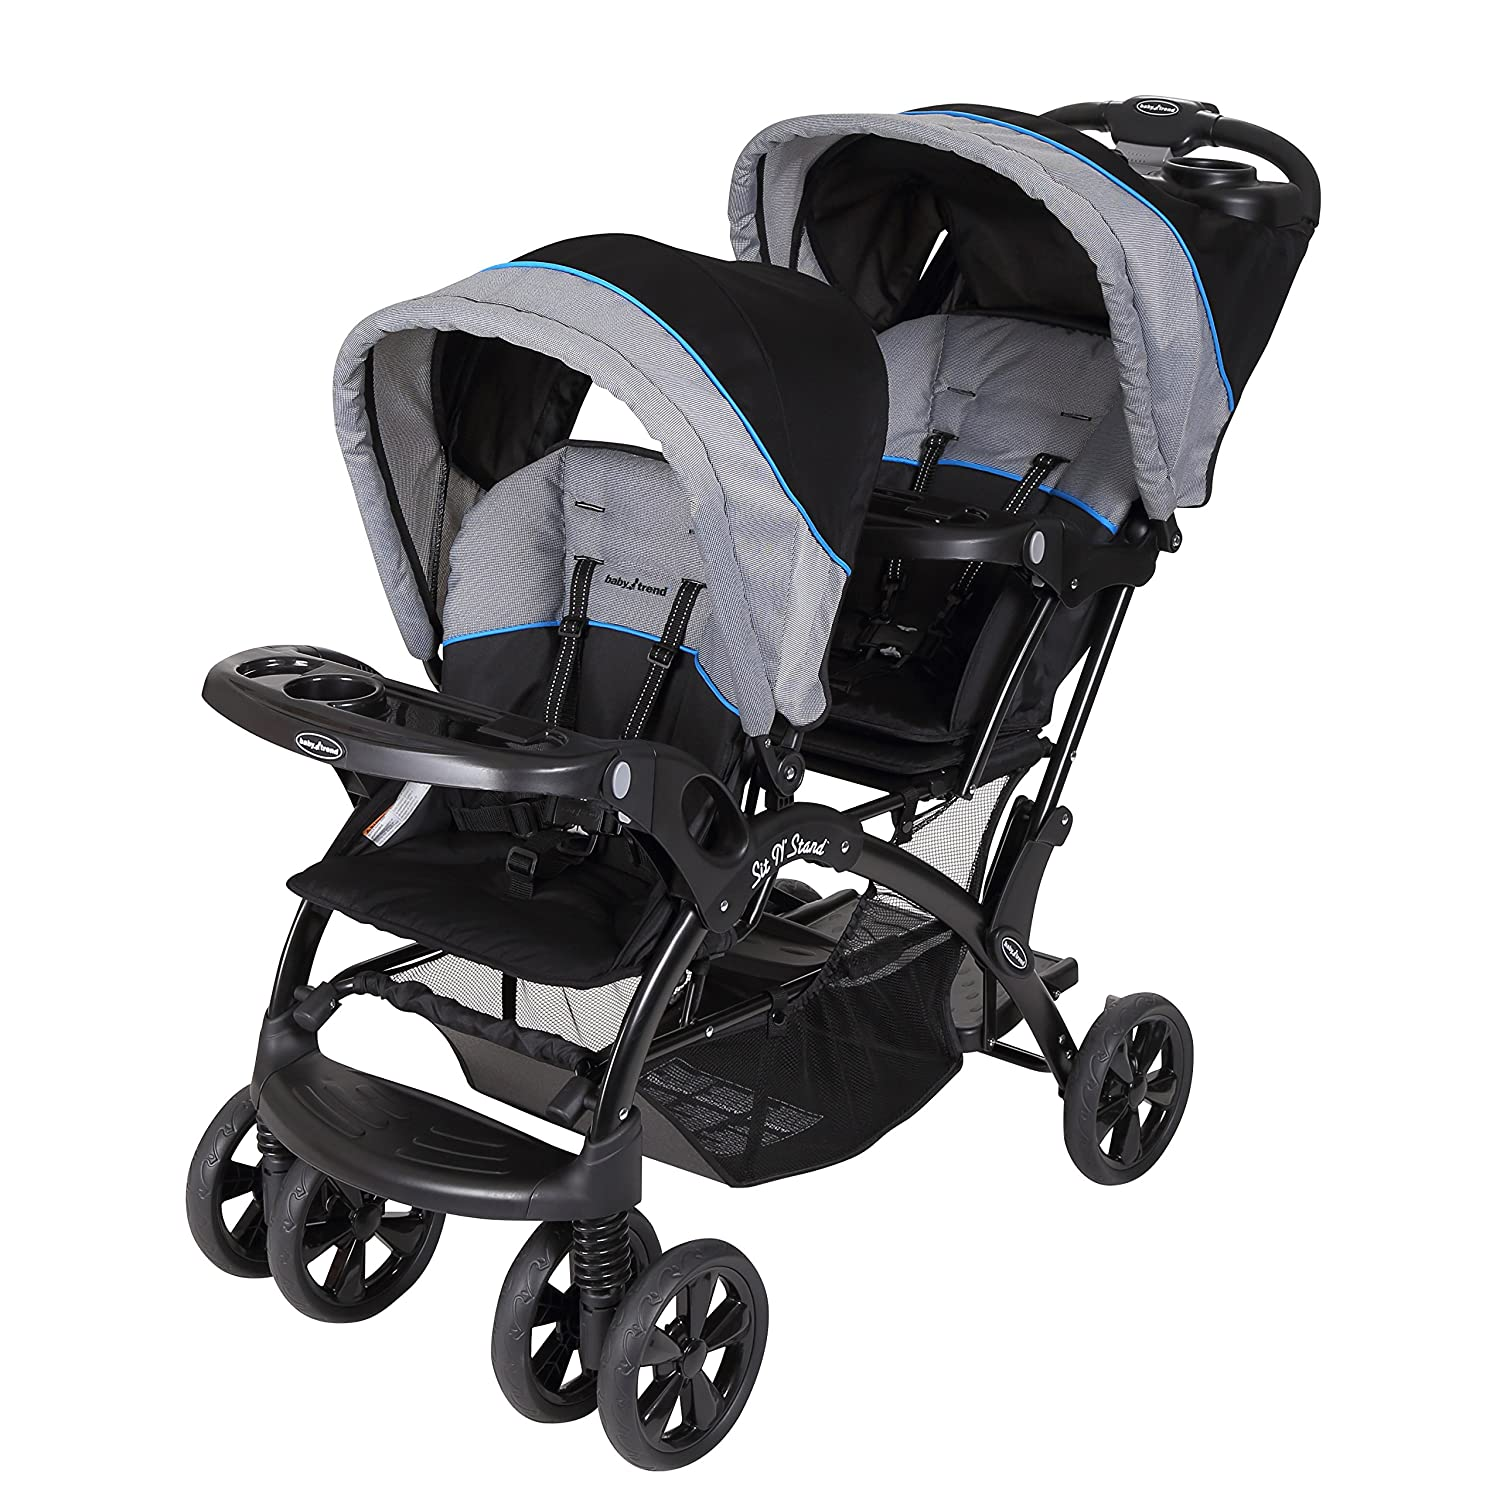 Baby Trend Double Sit N Stand Stroller, Millennium Blue SS76522